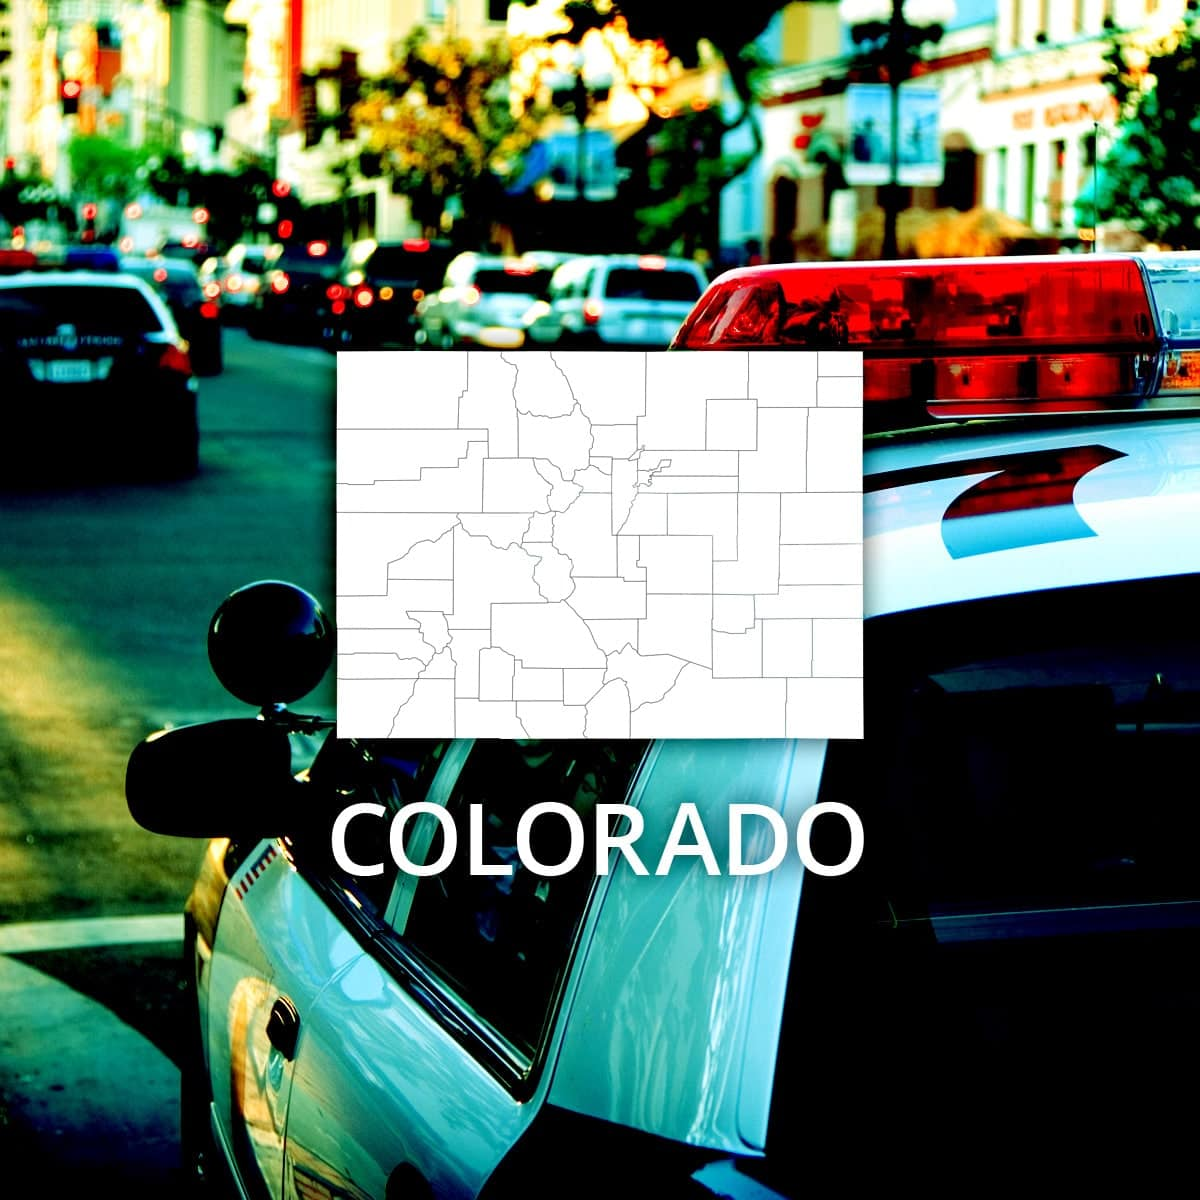 Colorado Unclaimed Property: Colorado Police Records Search & Police Departments Online